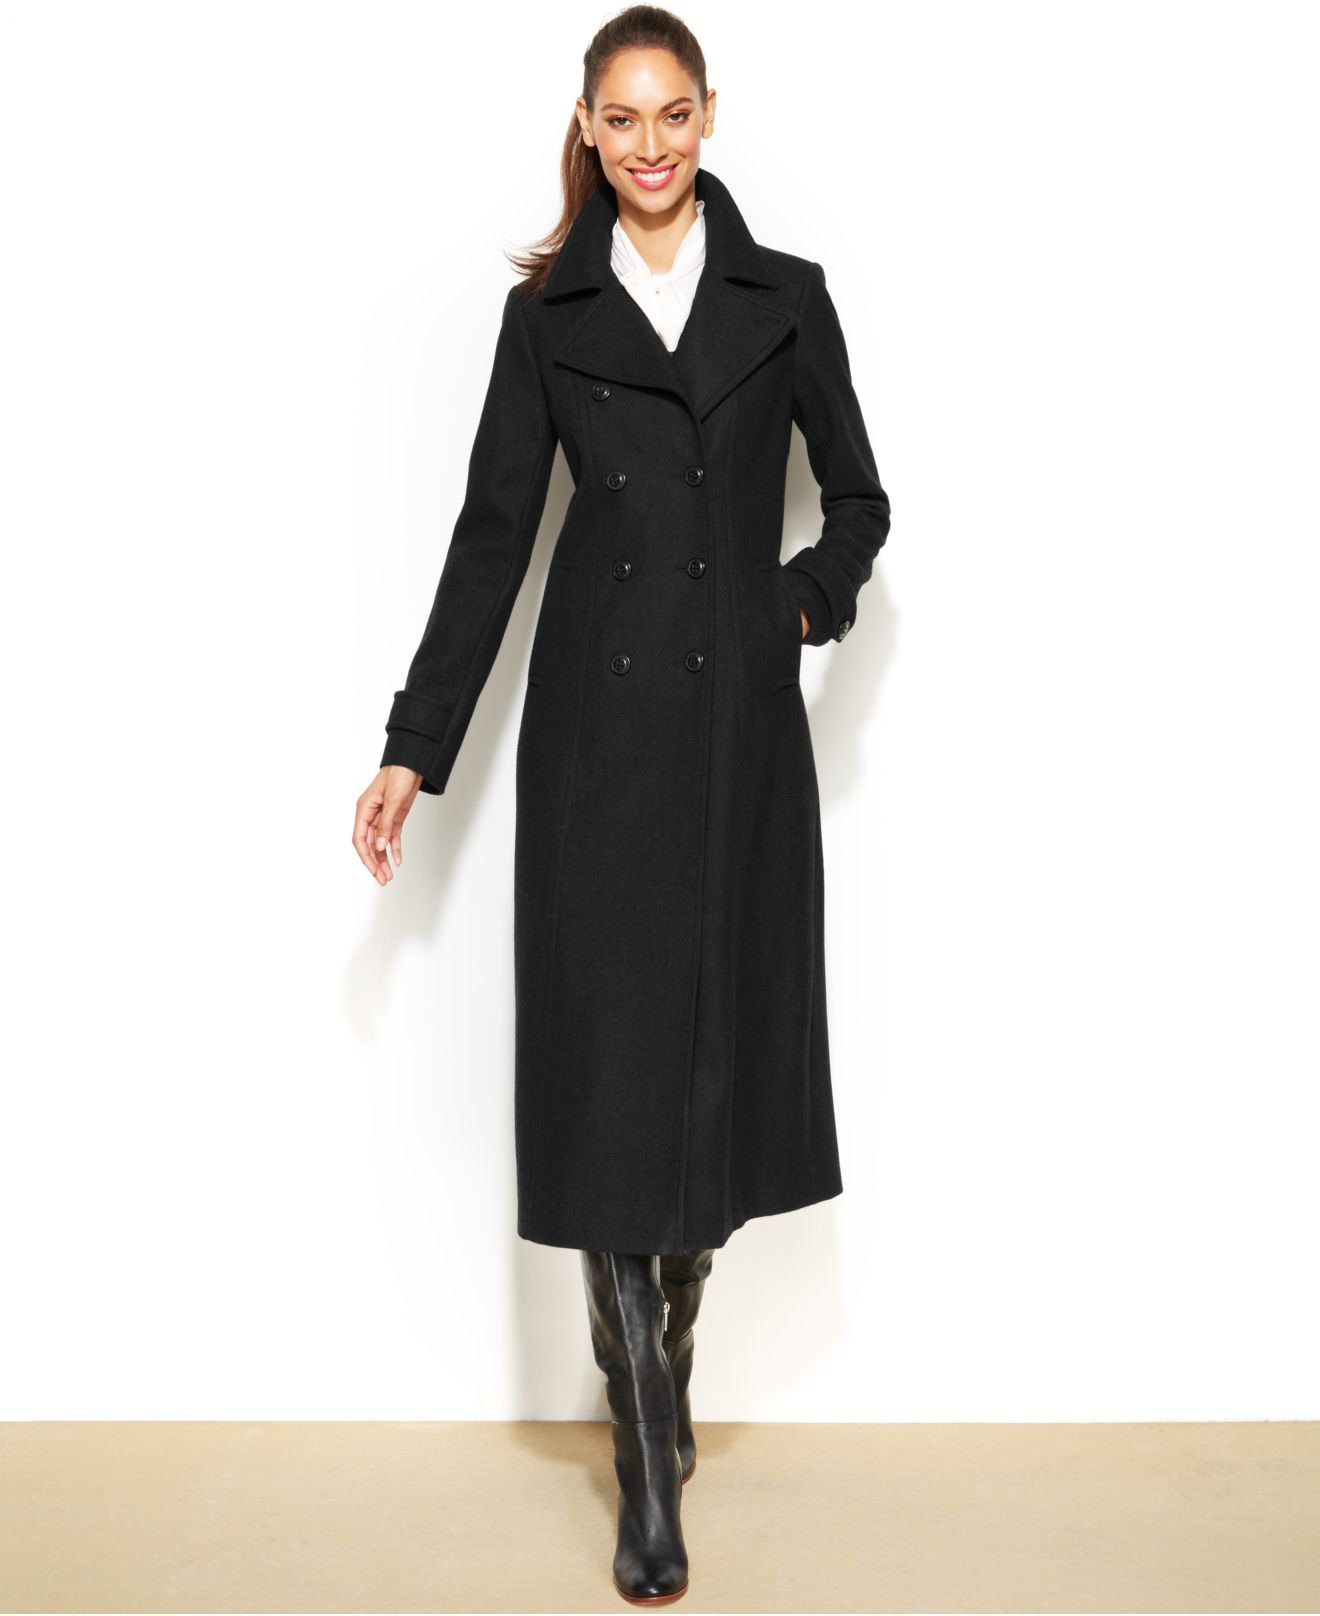 Dkny Petite Double-Breasted Wool-Blend Maxi Coat in Black | Lyst